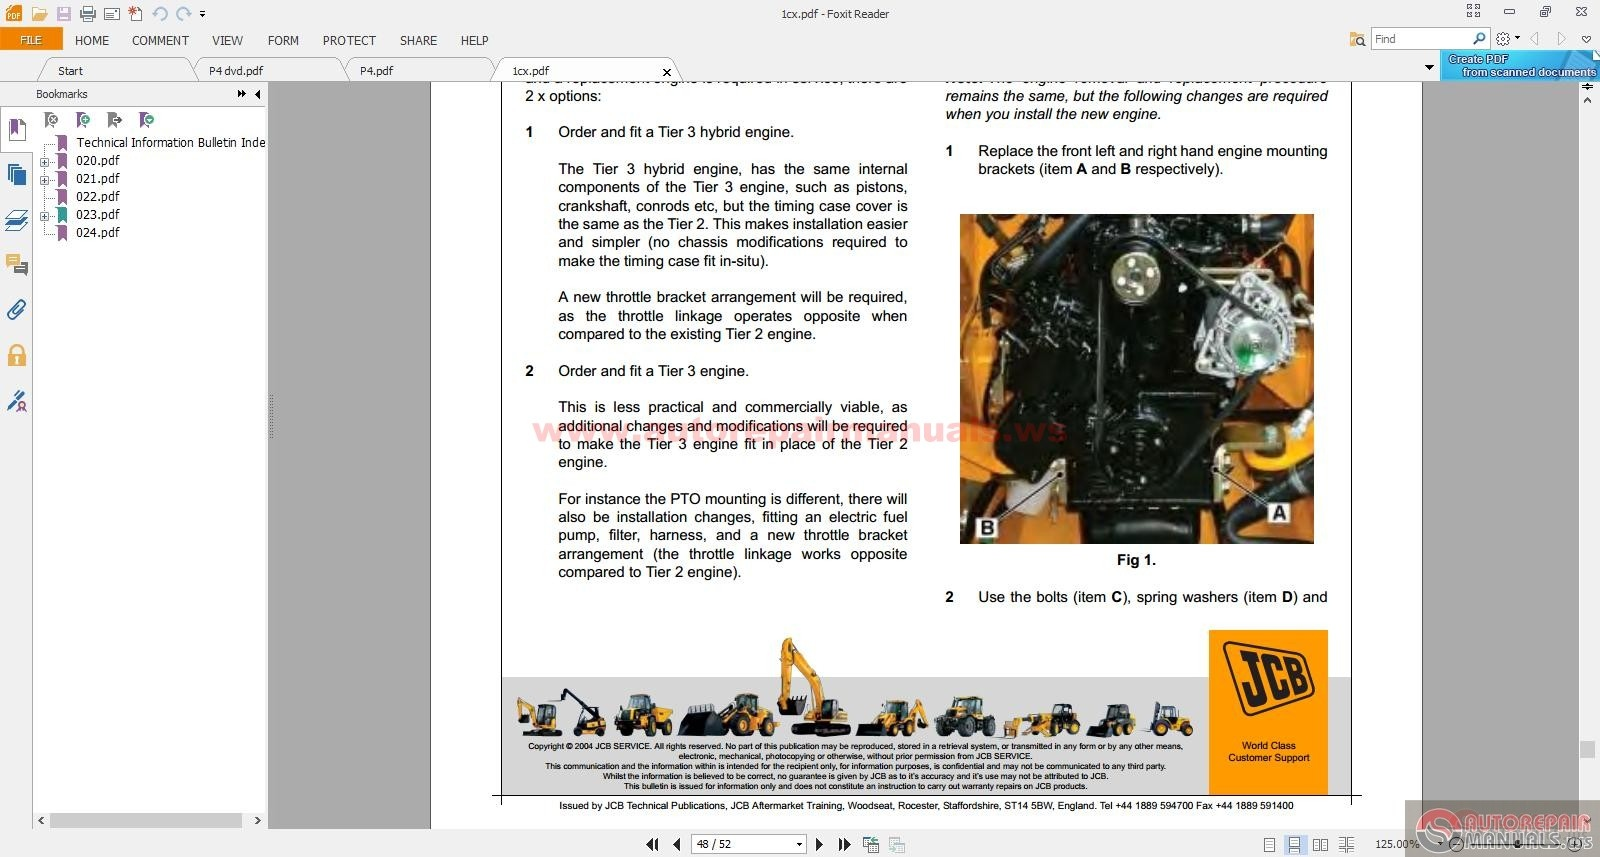 Jcb Compact Service Manuals Kg S4 Issue 50